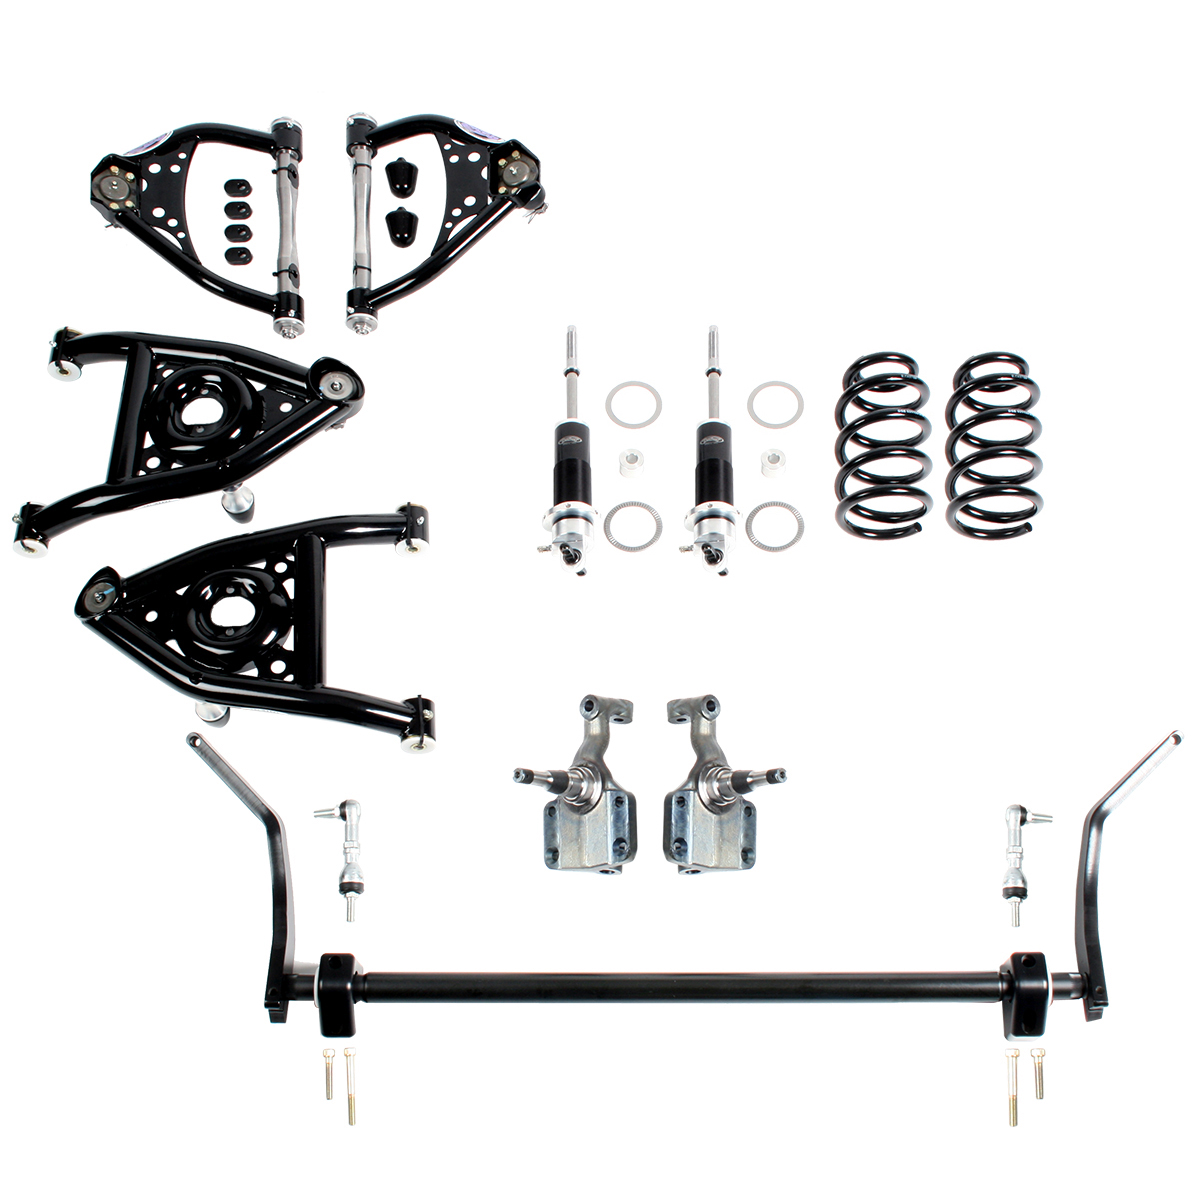 Detroit Speed  Speed Kit 2 Front Suspension Kit with Splined Sway Bar Base Shocks 1967 A-Body SBC LS